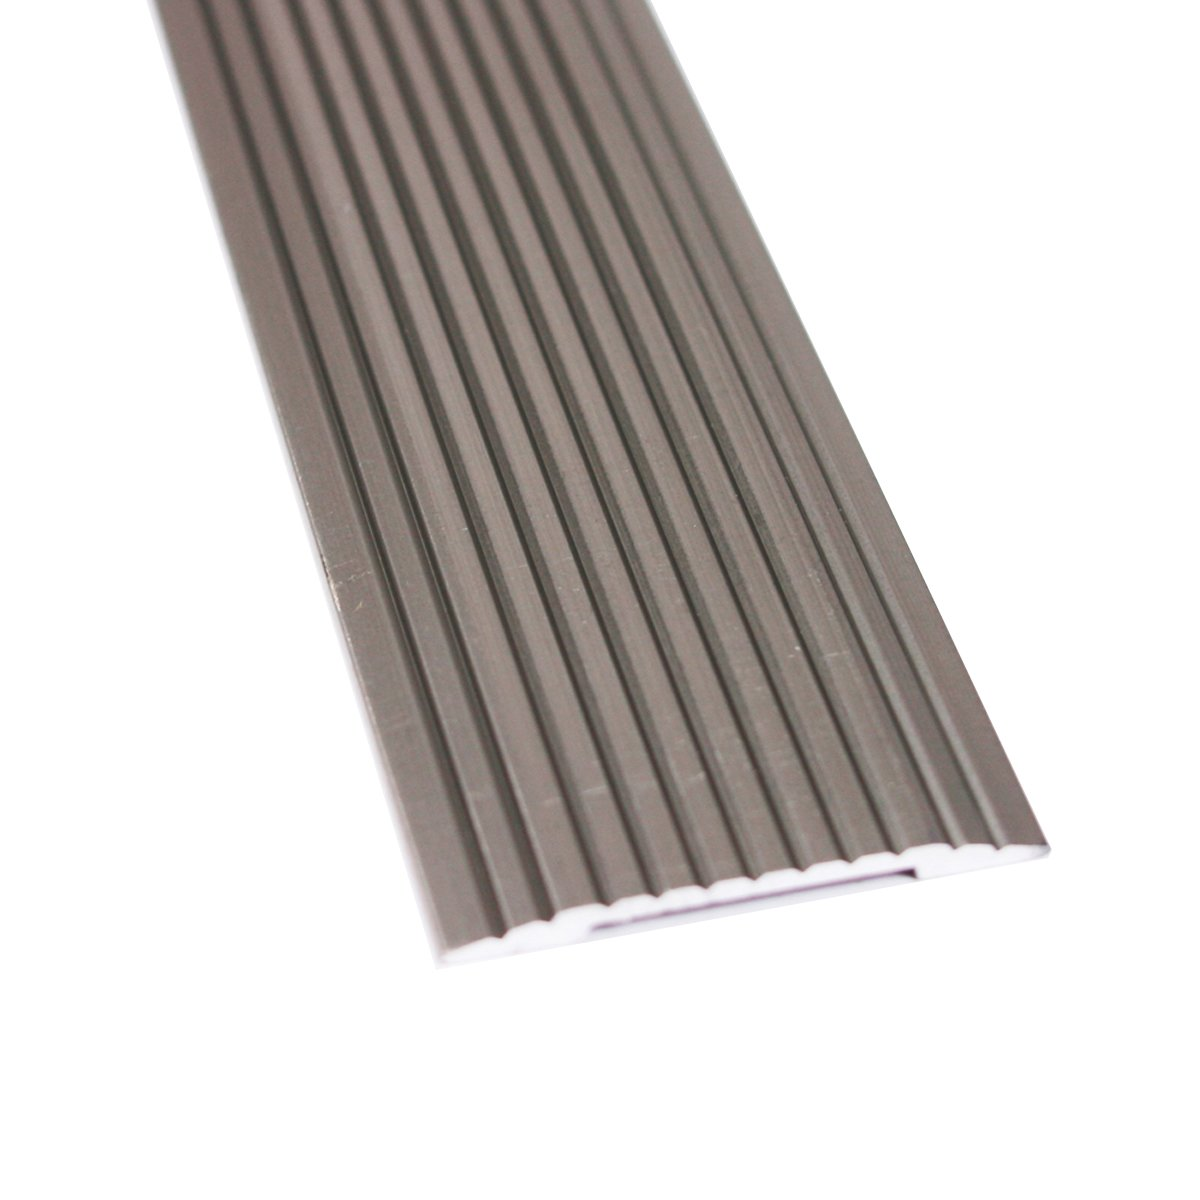 M-D Building Products 43874 1-1/4-Inch by 72-Inch Seam Binder Wide Fluted